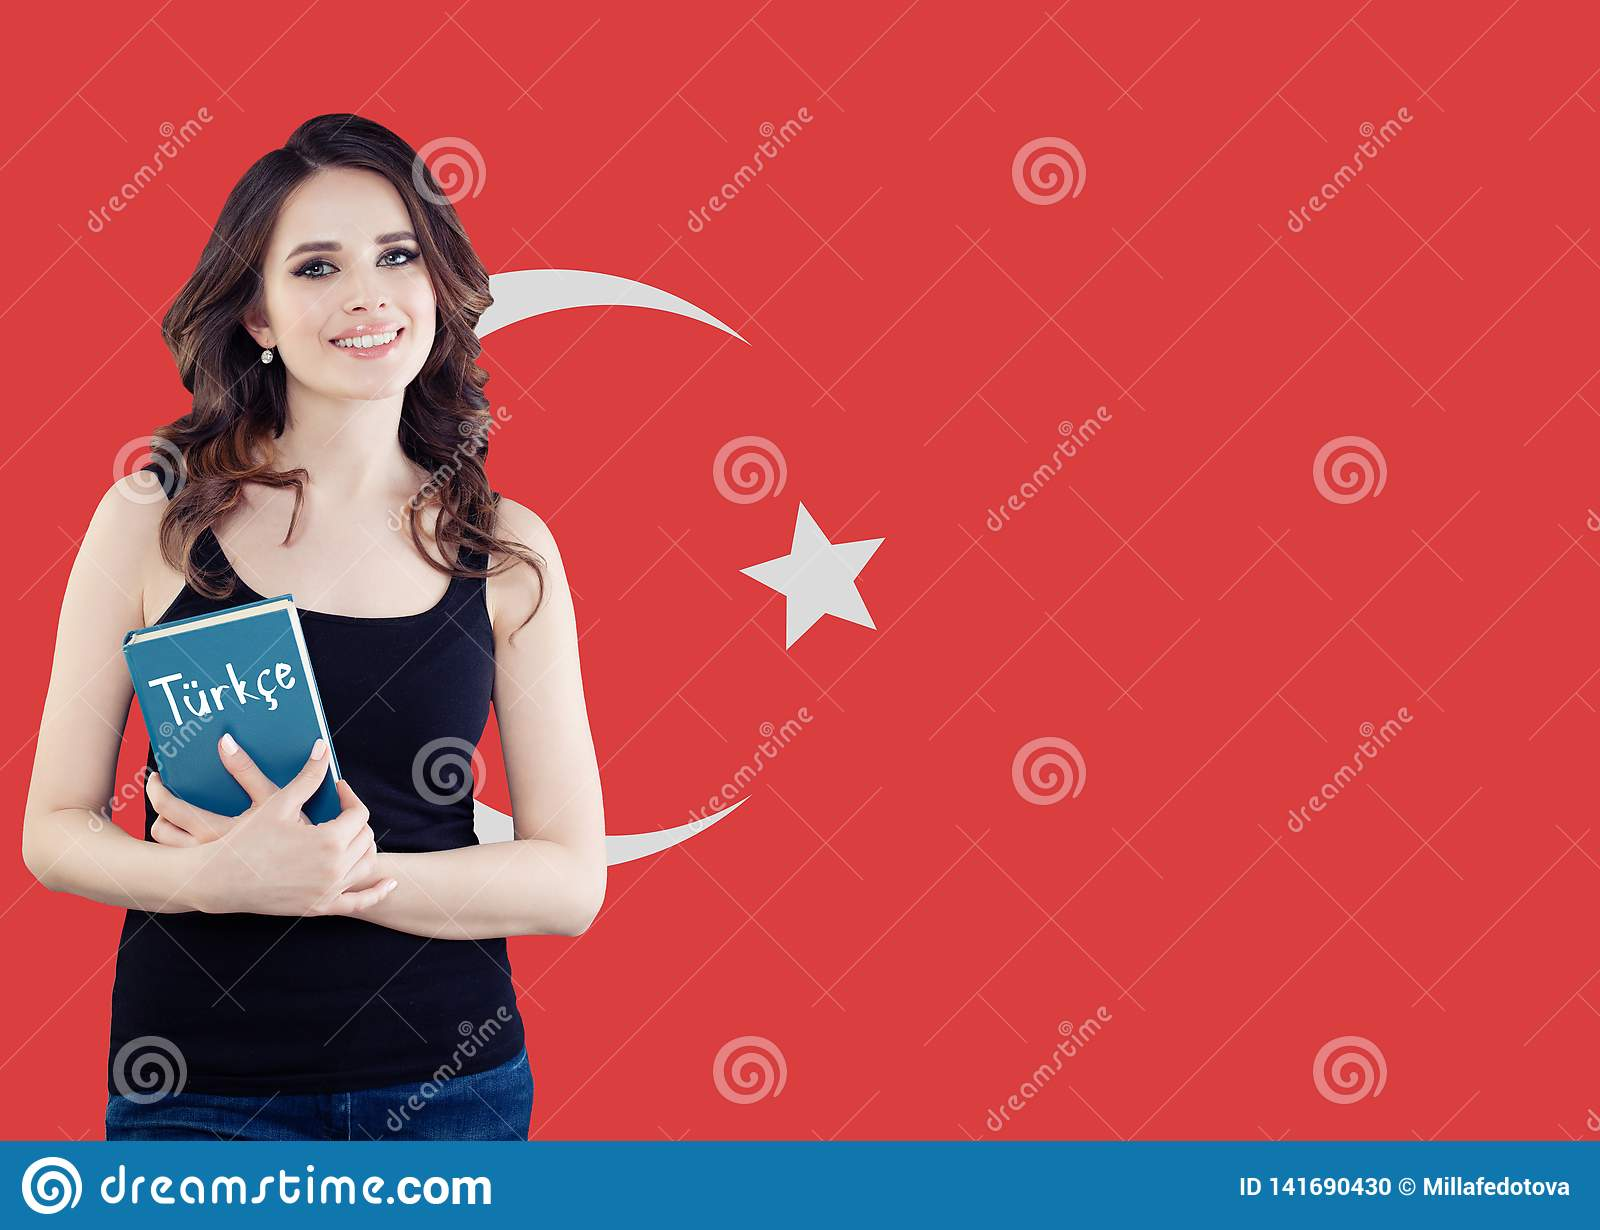 Cheerful young woman student with the Turkey flag. Learn turkish language, language school concept